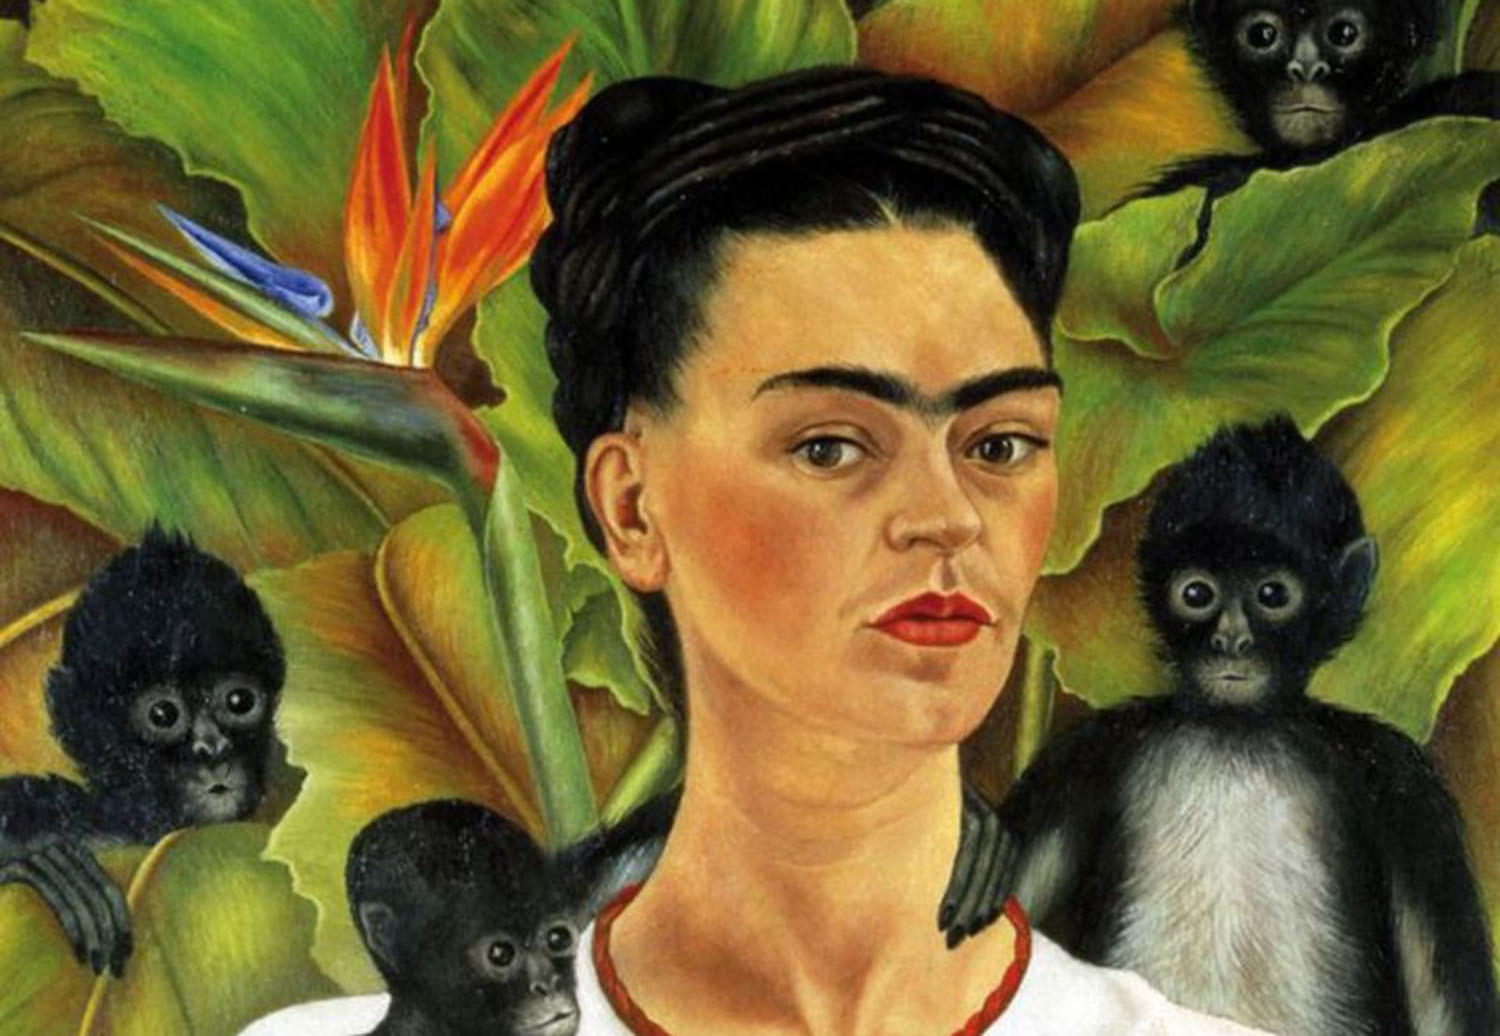 frida kahlo self portrait painexhibit preview frida diego passion politics and painting ifwhqtrb